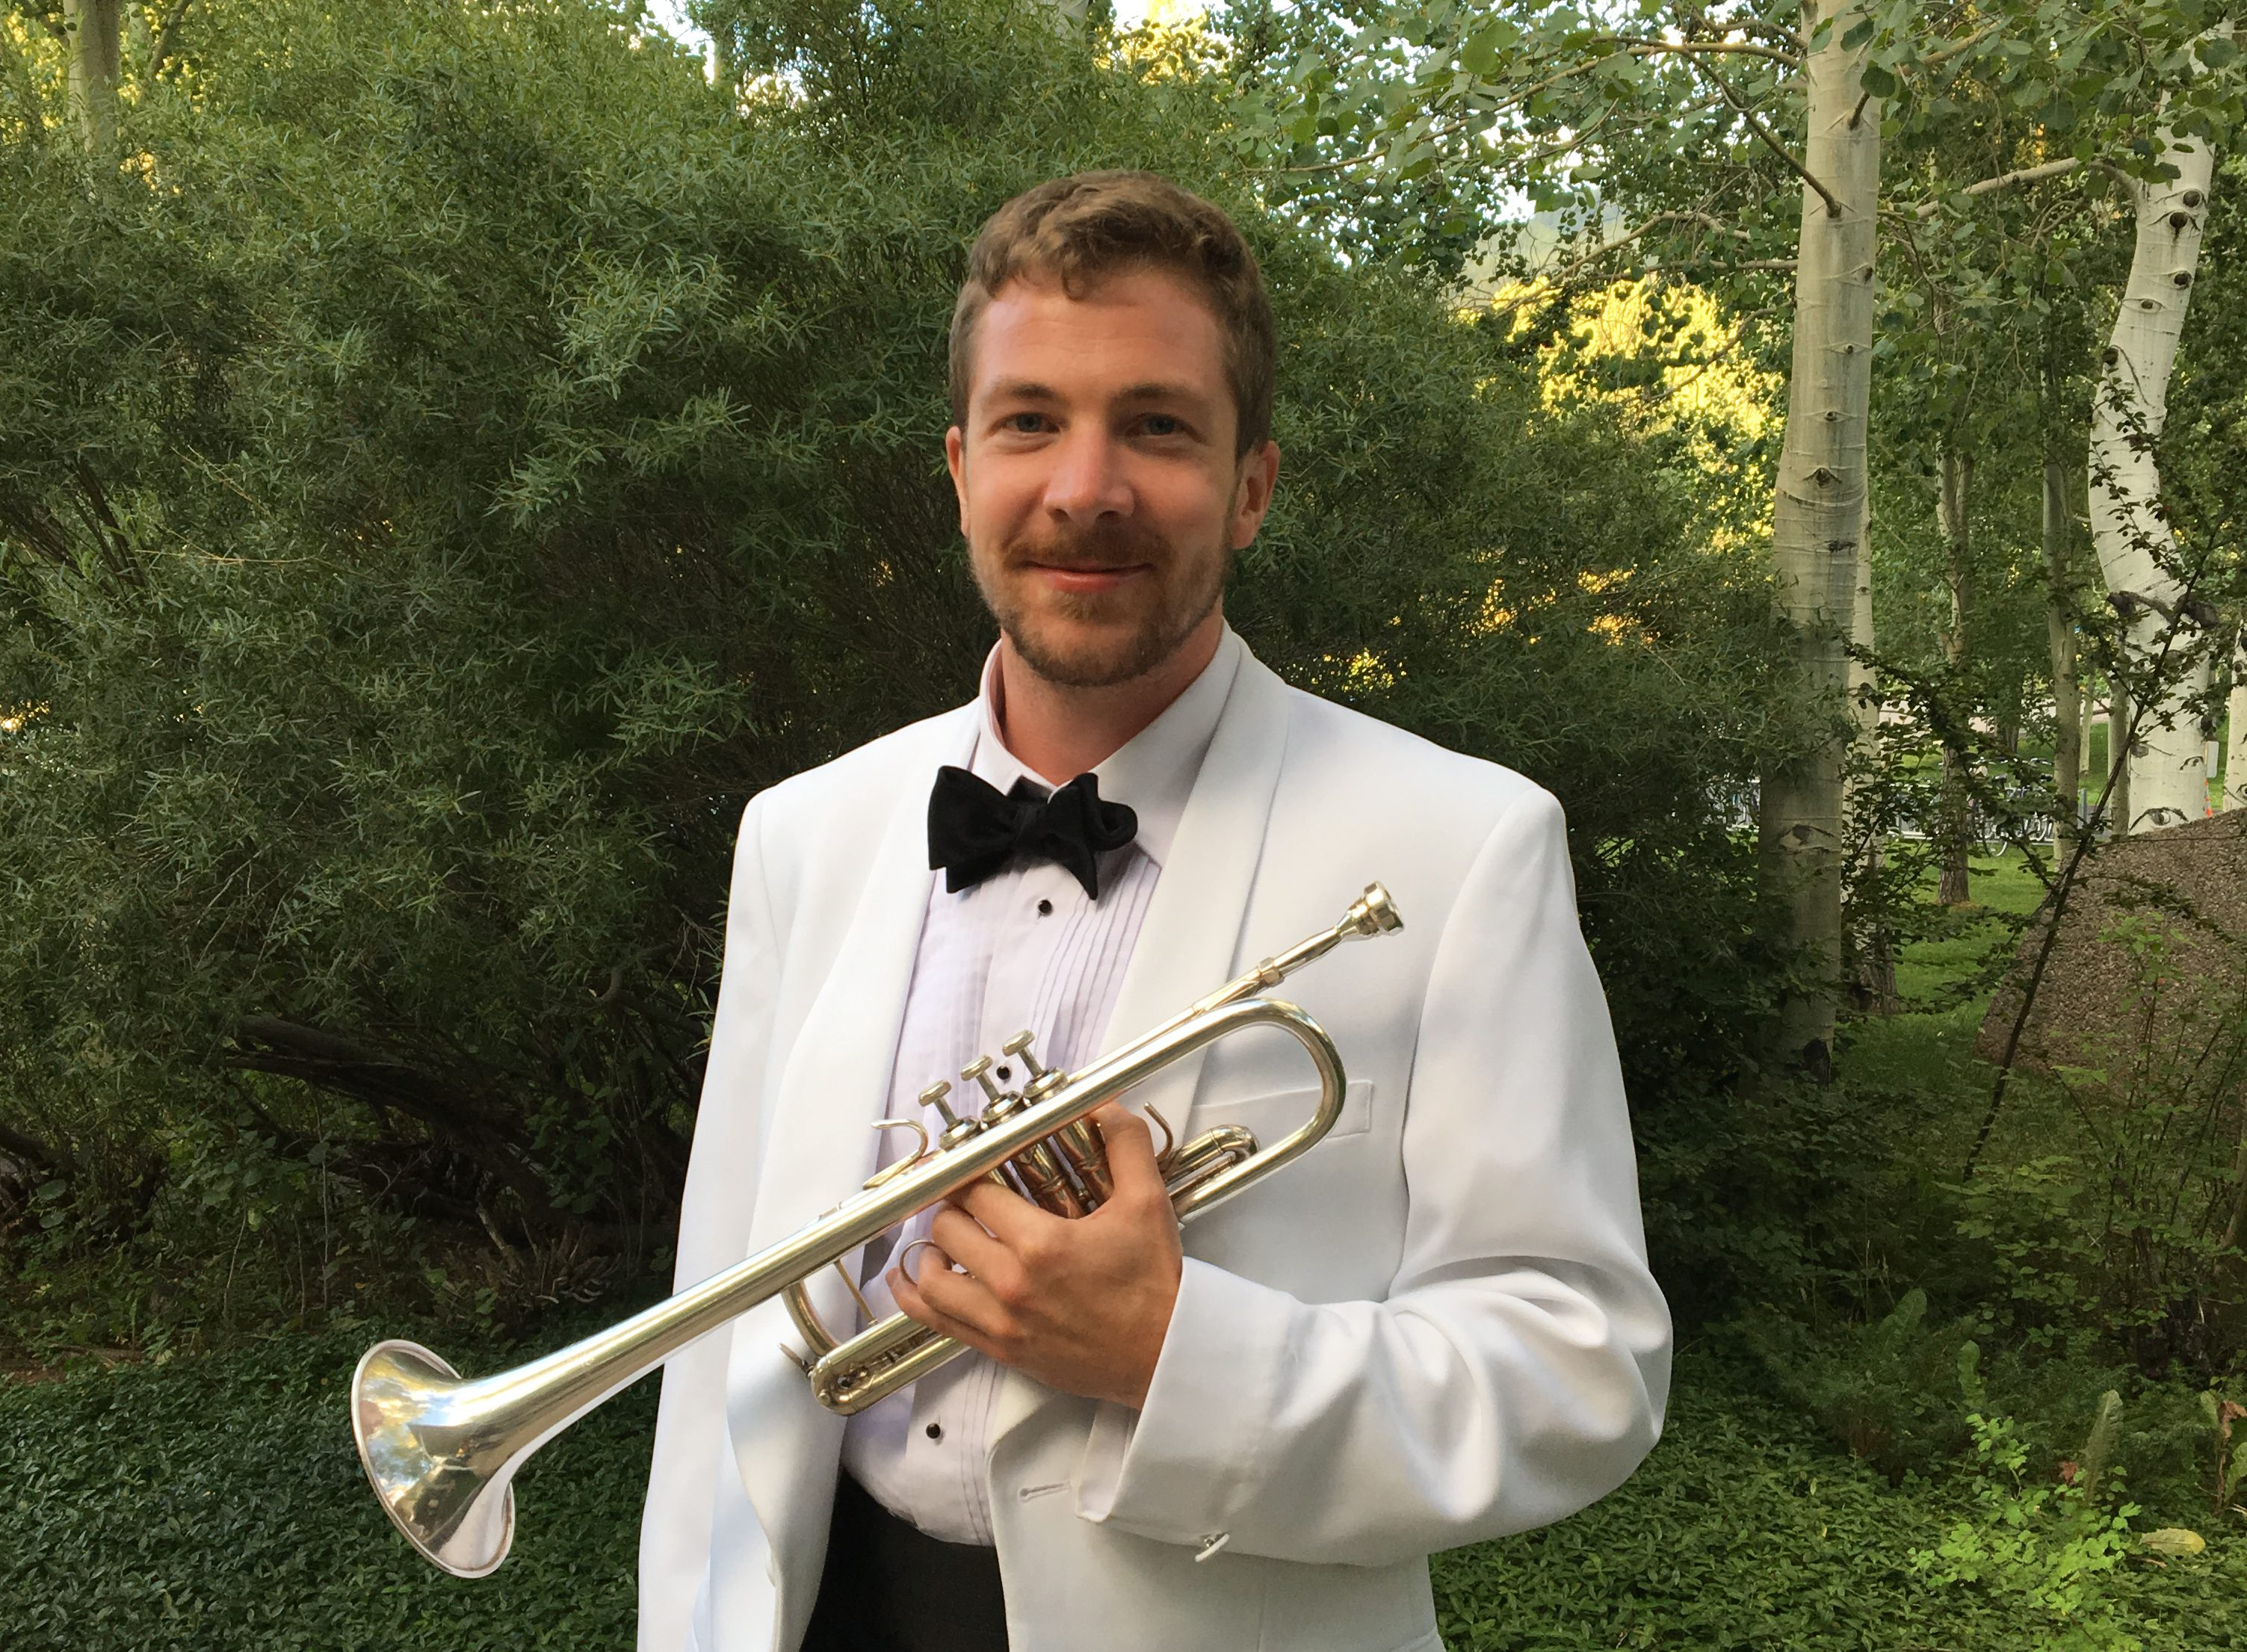 Douglas Amos Trumpet Player and Teacher